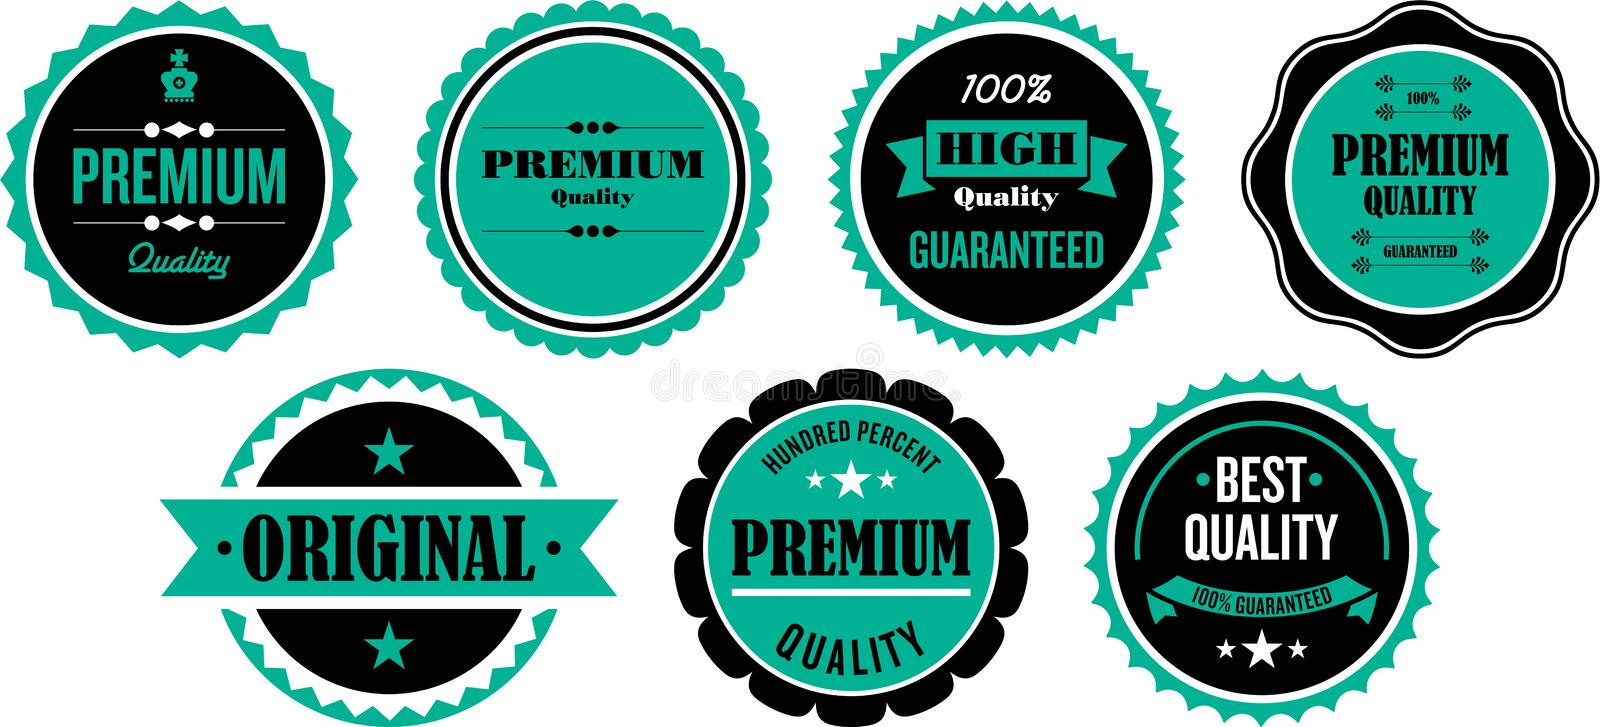 Quality Seals or Stickers. Premium quality seal, sticker and badge designs vector illustration